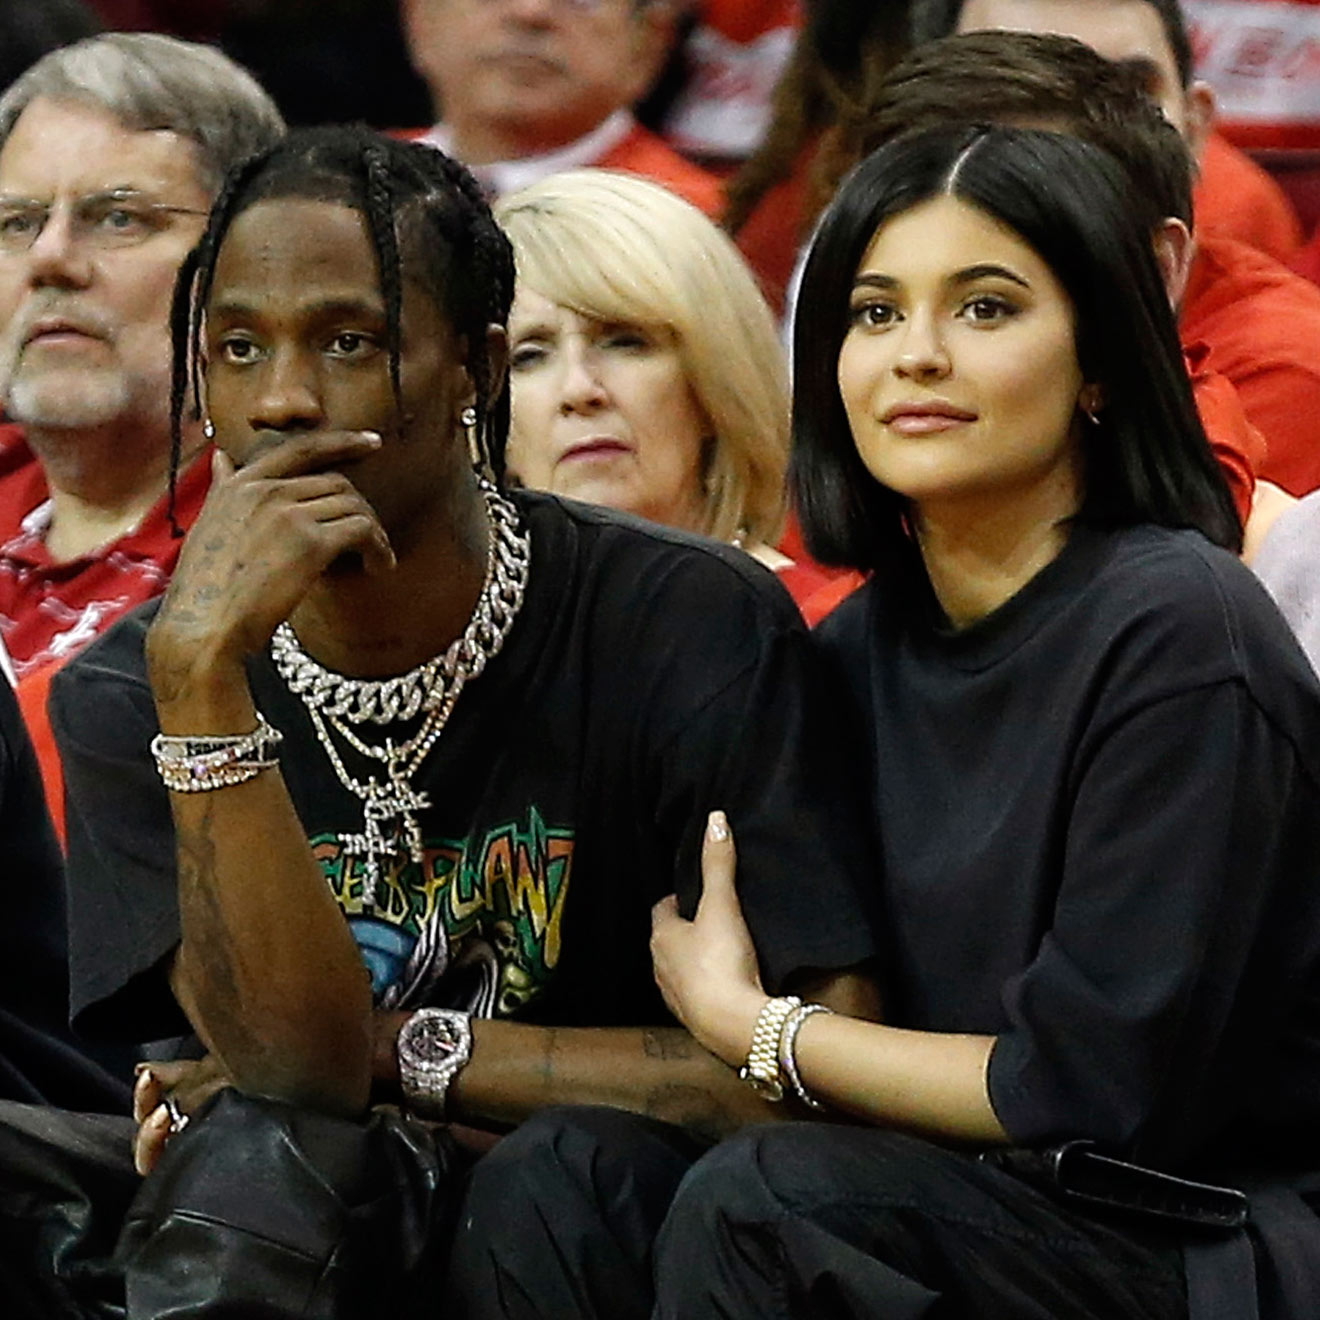 Kylie Jenner: Krasse Geburtstags-Party für Boyfriend Travis Scott